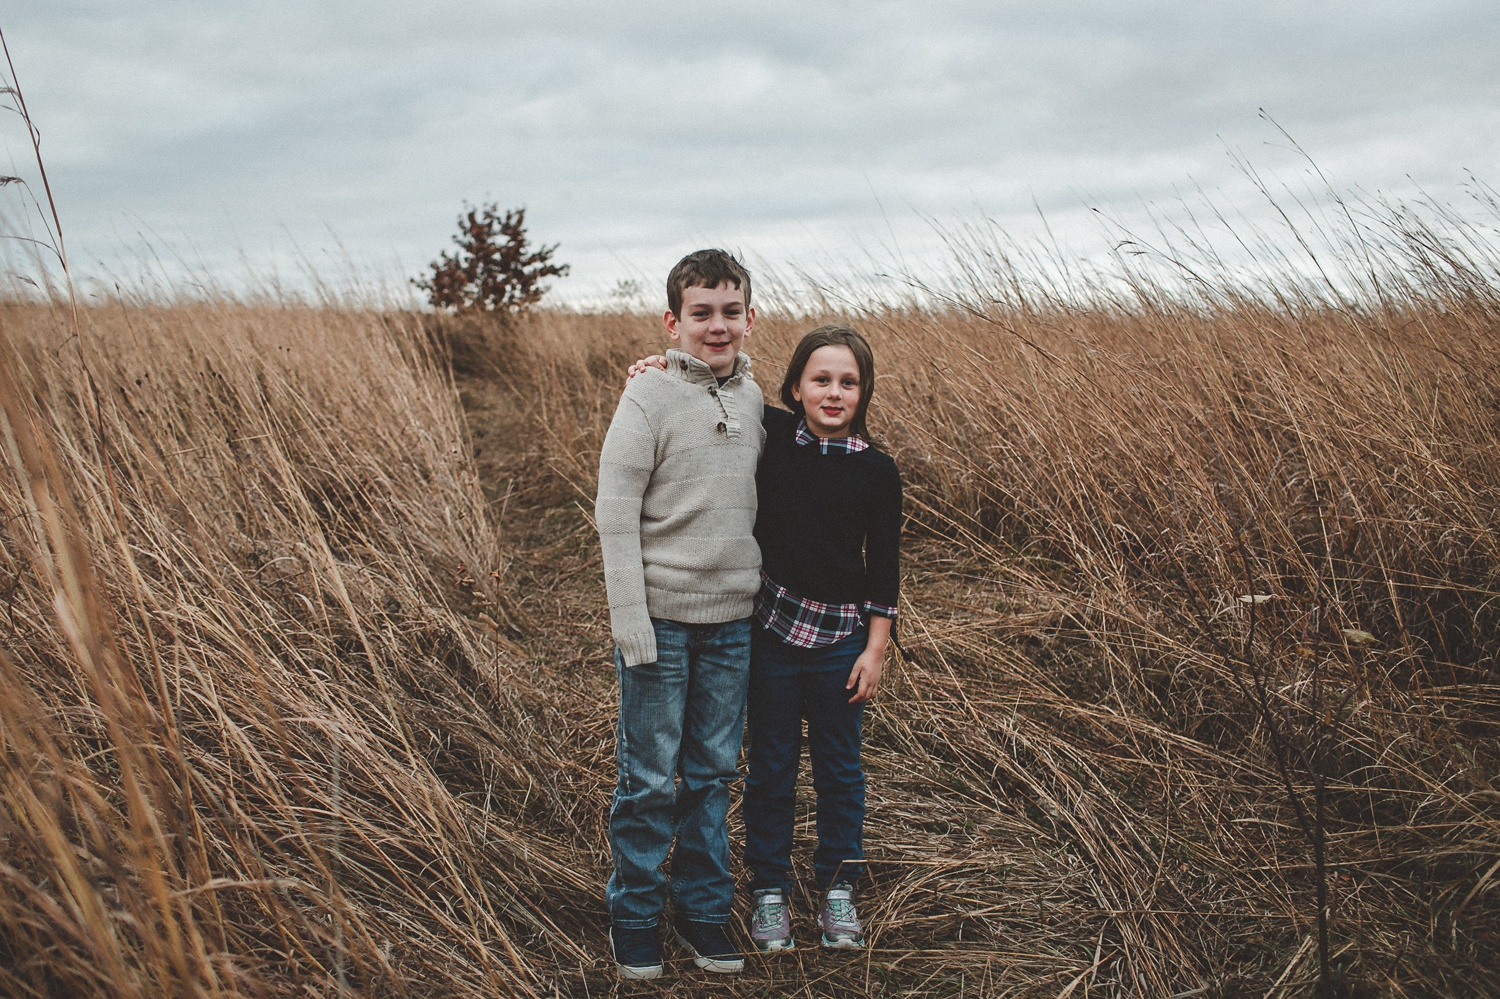 nachusa_grasslands_Franklin_Grove_IL_family_portrait_photographer_0037.jpg